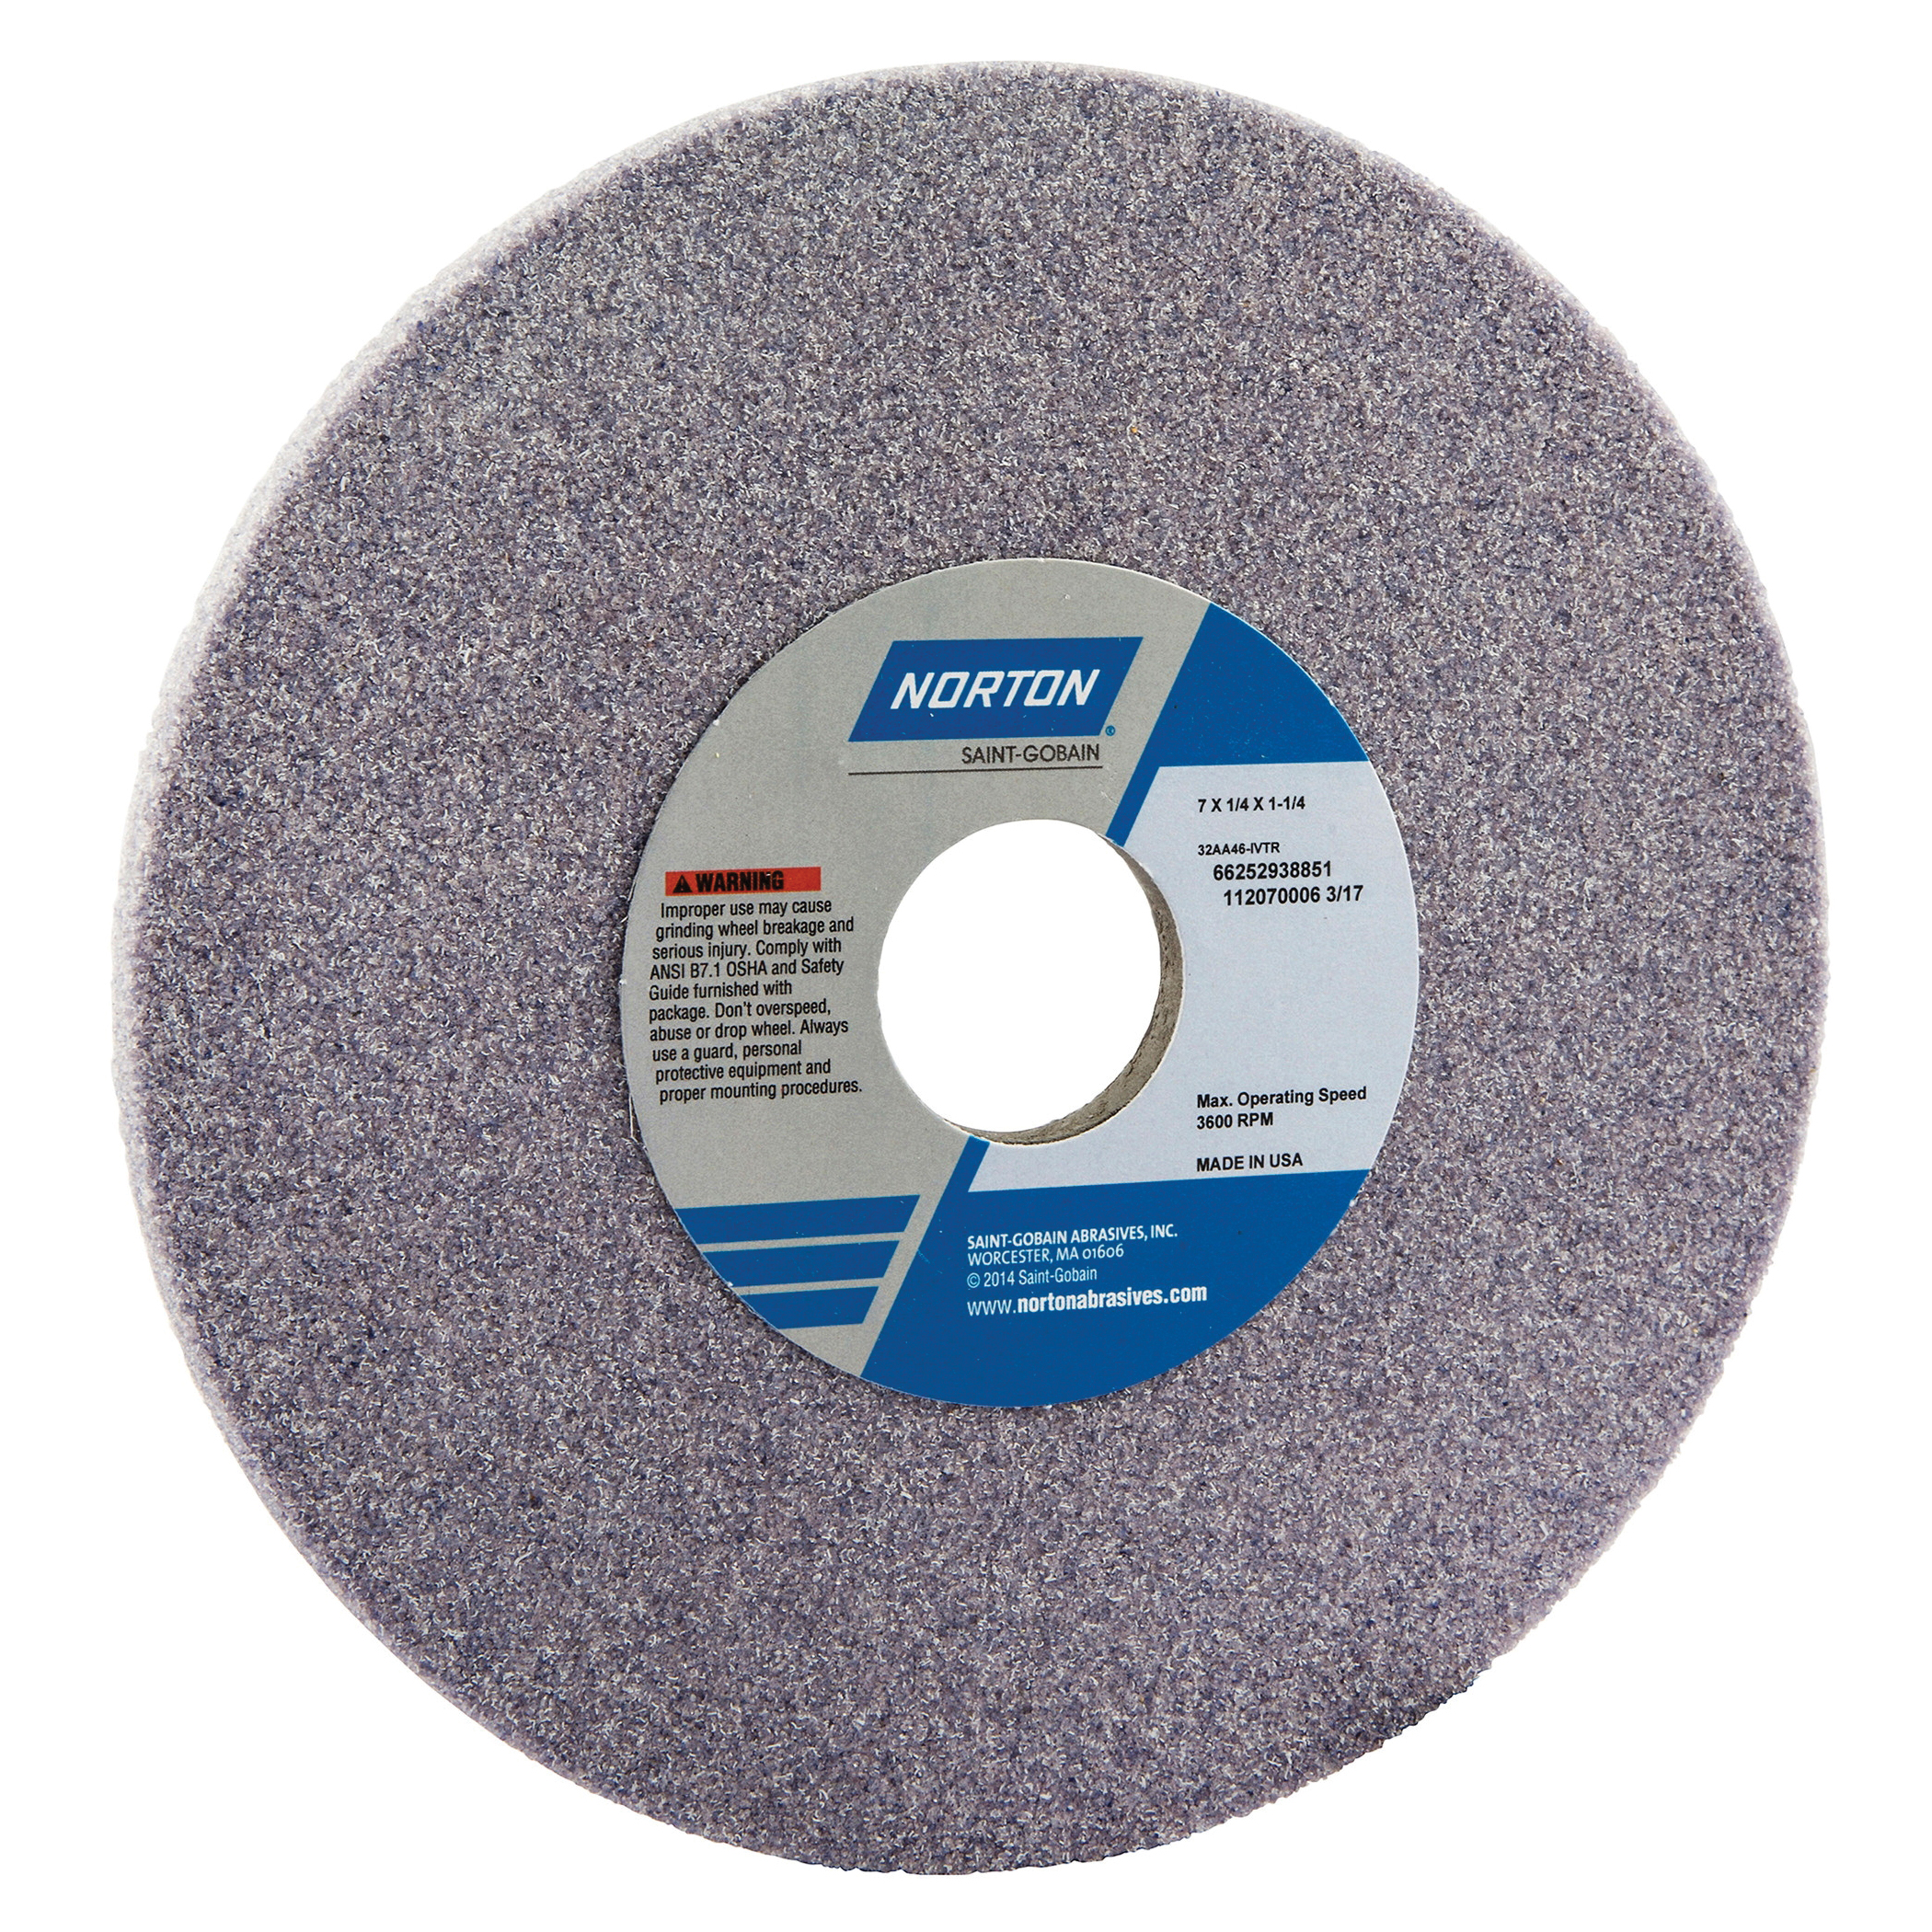 Norton® 66252938851 32AA Straight Toolroom Wheel, 7 in Dia x 1/4 in THK, 1-1/4 in Center Hole, 46 Grit, Aluminum Oxide Abrasive